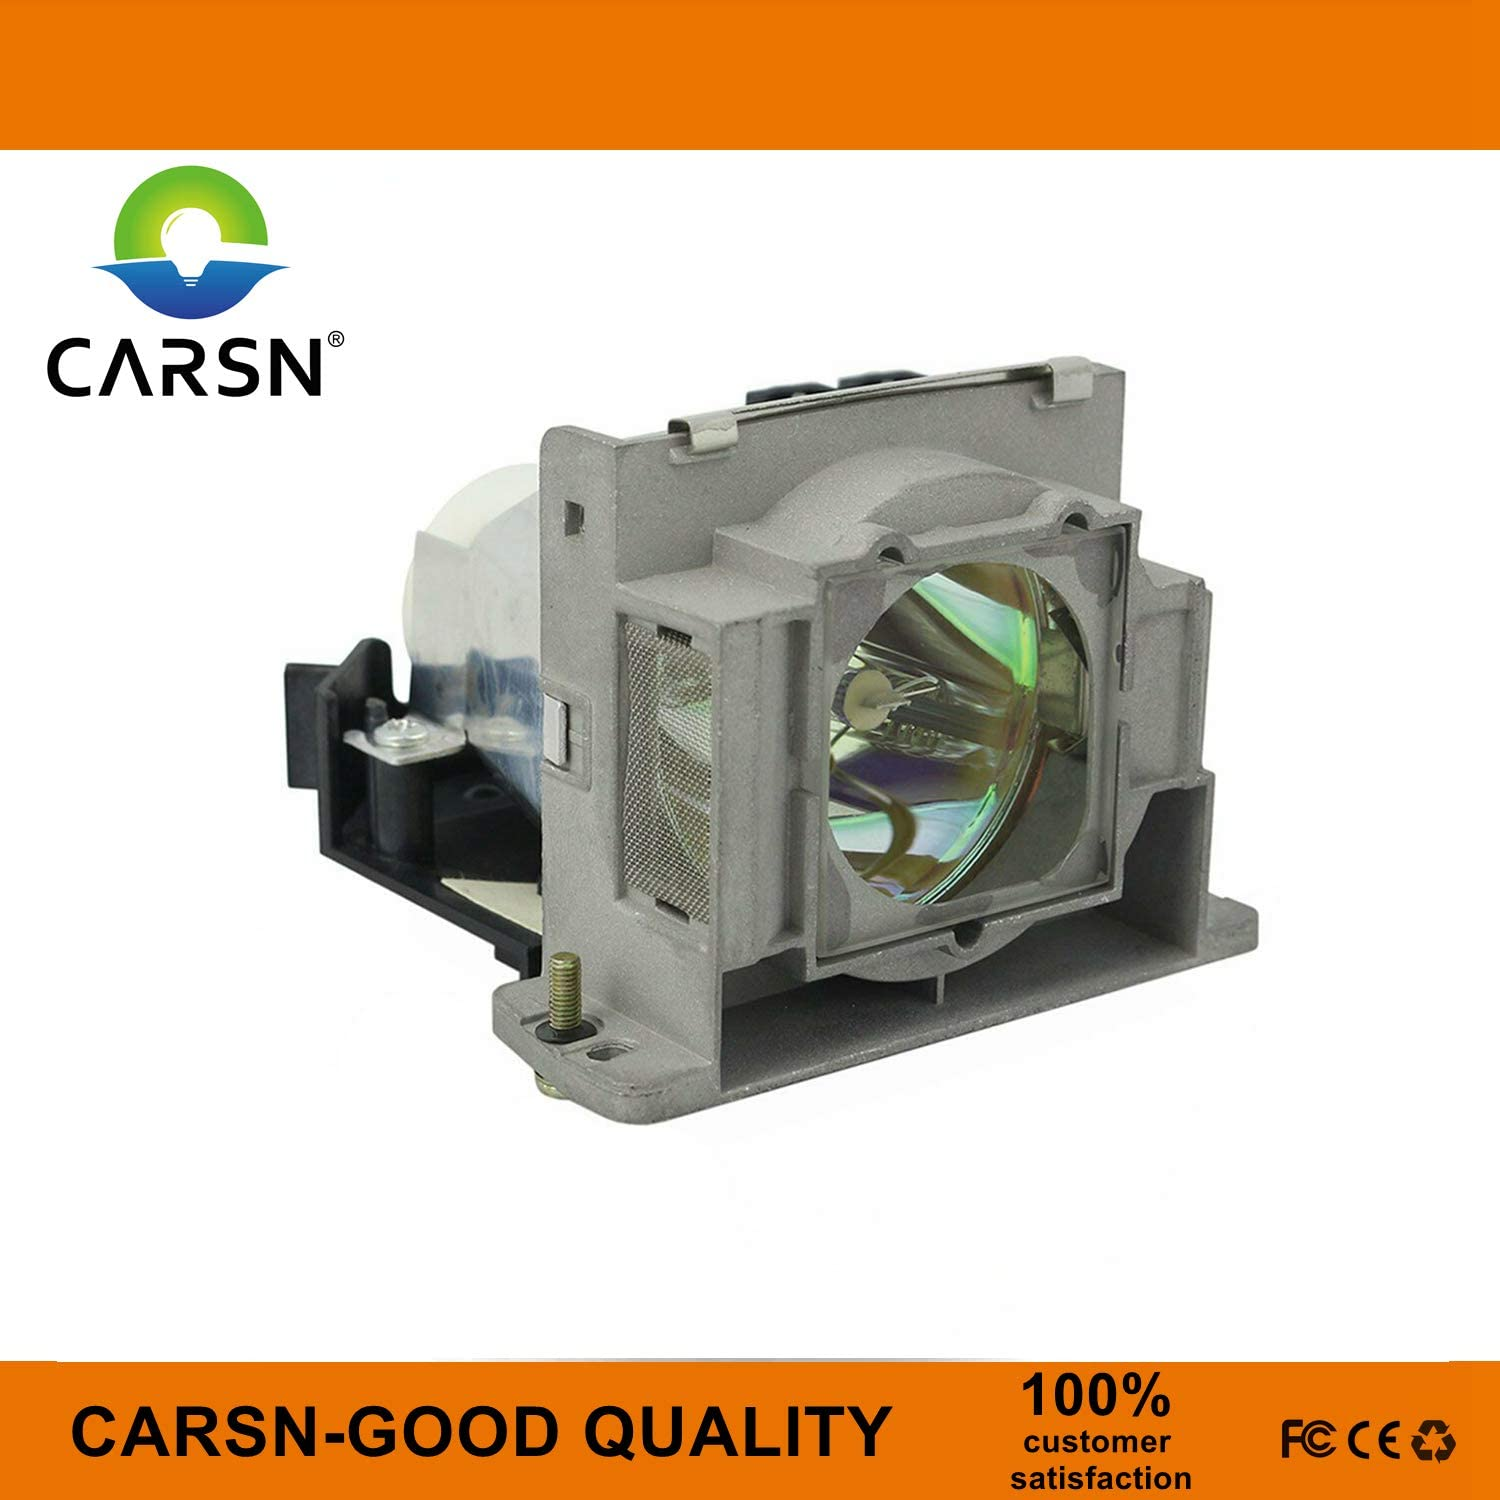 Lamp with Housing by CARSN VLT-XD400LP Replacement Projector Lamp for Mitsubishi XD400 XD460 XD480 XD490 XD450 ES100 XD460U ES100U